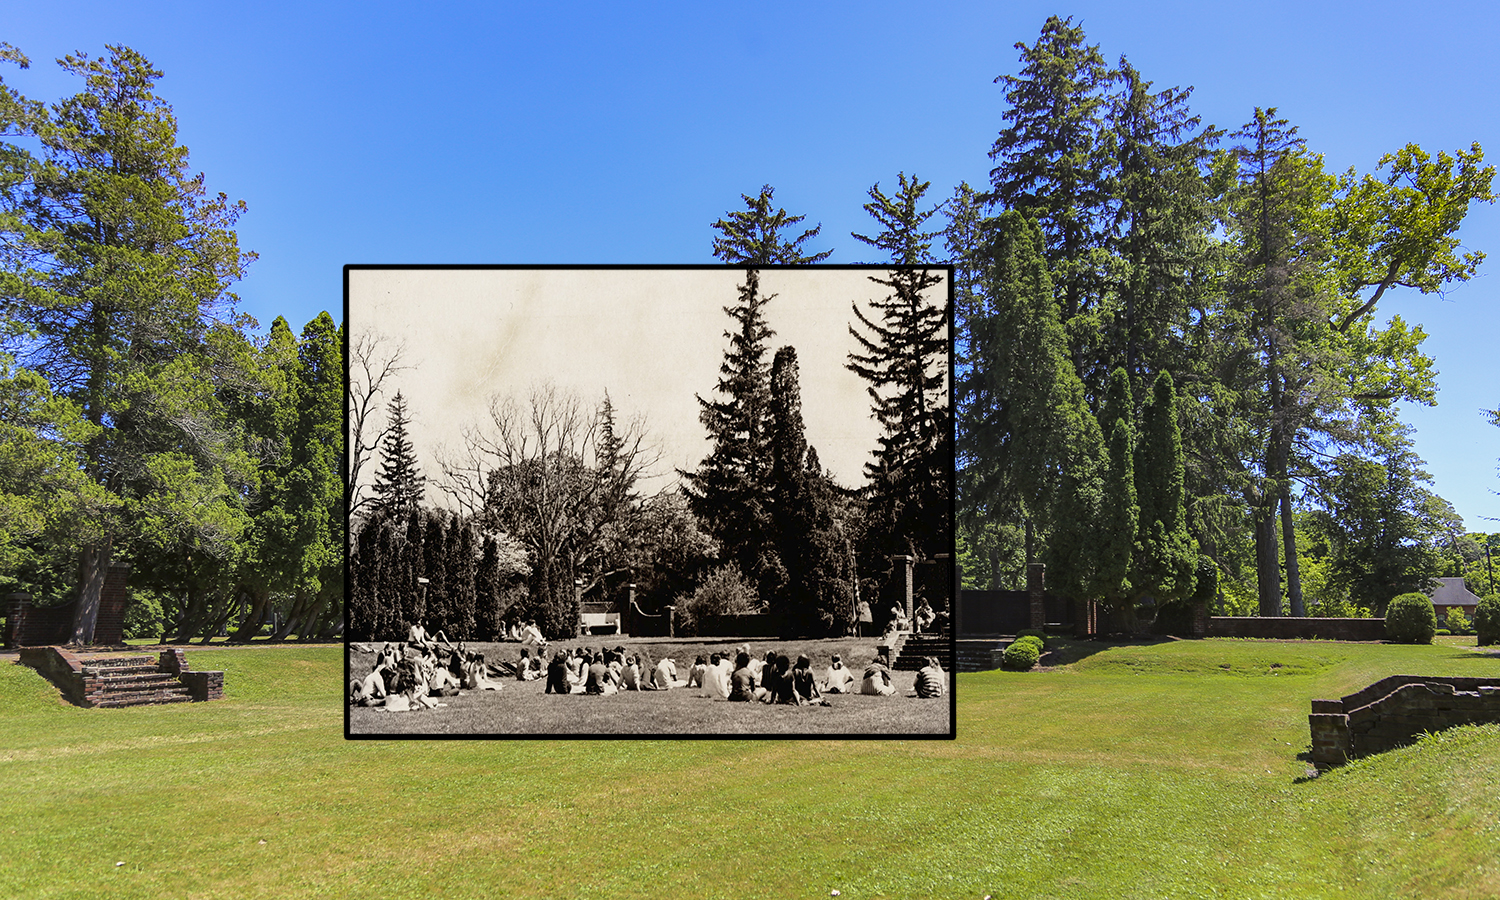 Though the trees have grown, not much else has changed in the Sunken Gardens in the arts campus since 1970.